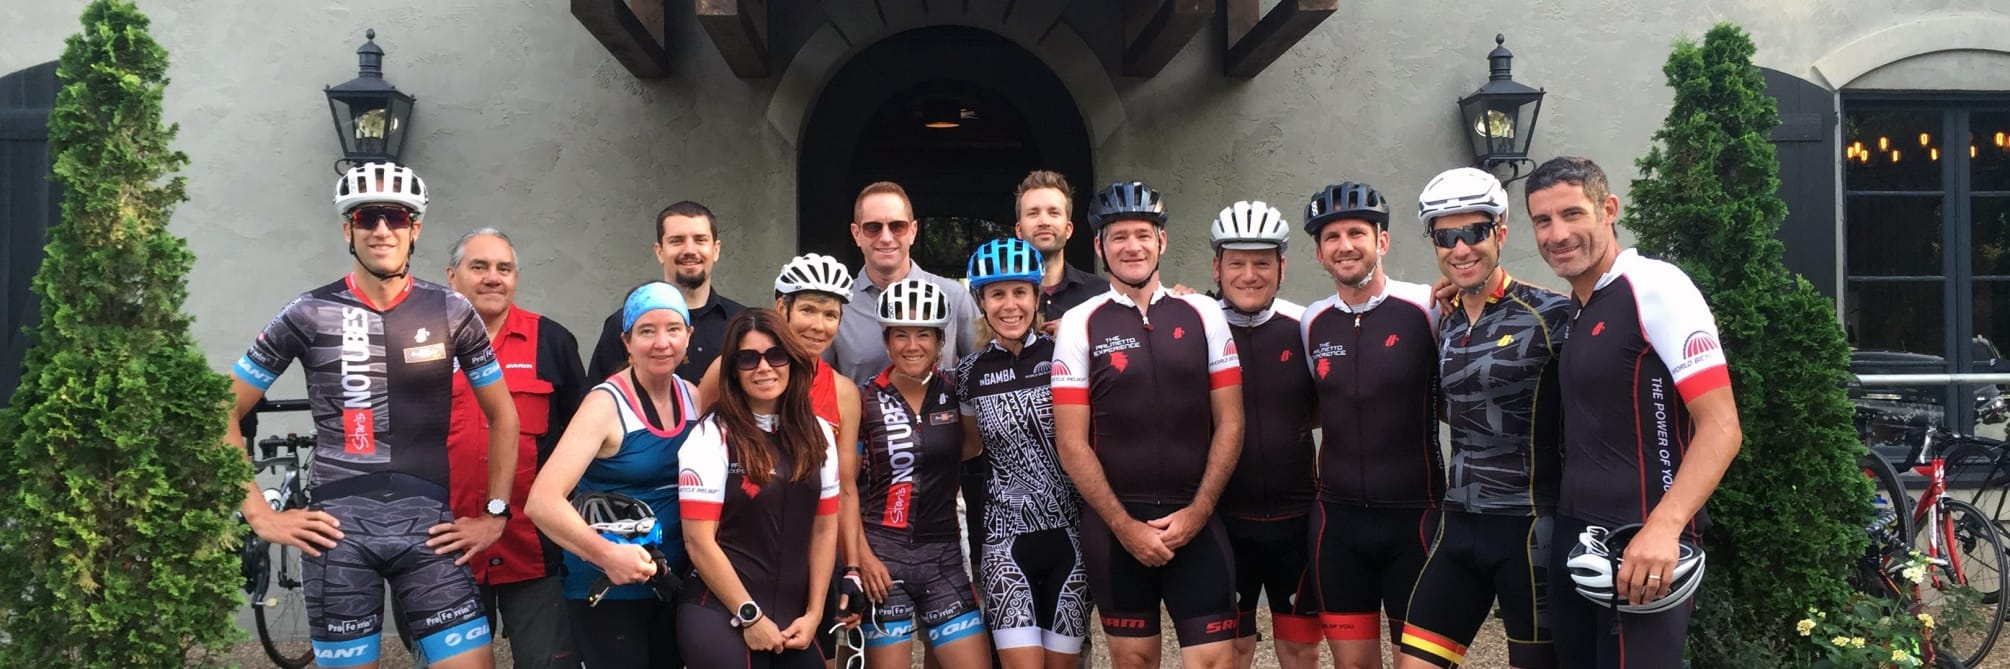 The Cliffs Partners World Bicycling Relief Ridges group photograph